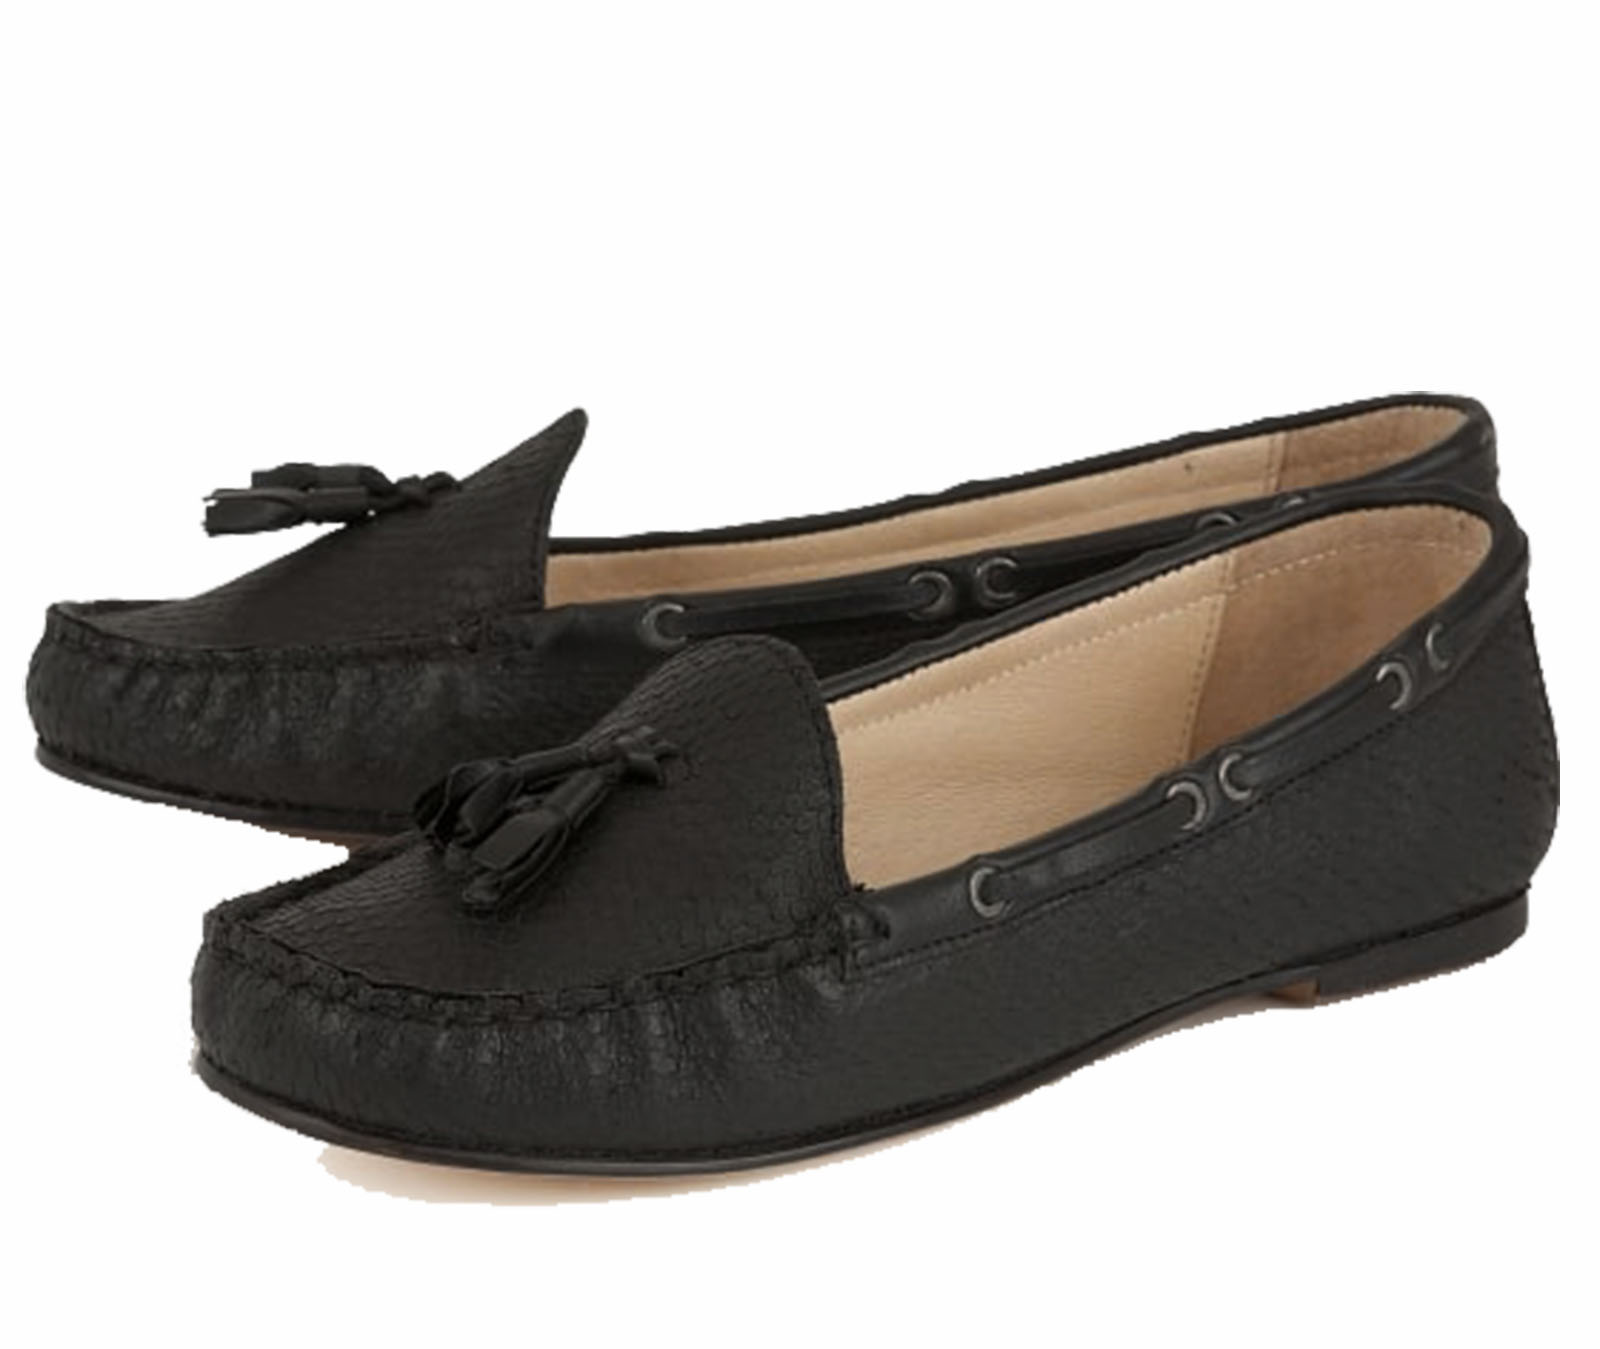 5590c12b6e2 Sentinel LADIES RAVEL ELOY FLAT LEATHER BLACK SLIP-ON MOCCASIN LOAFERS SHOES  SIZES 3-8